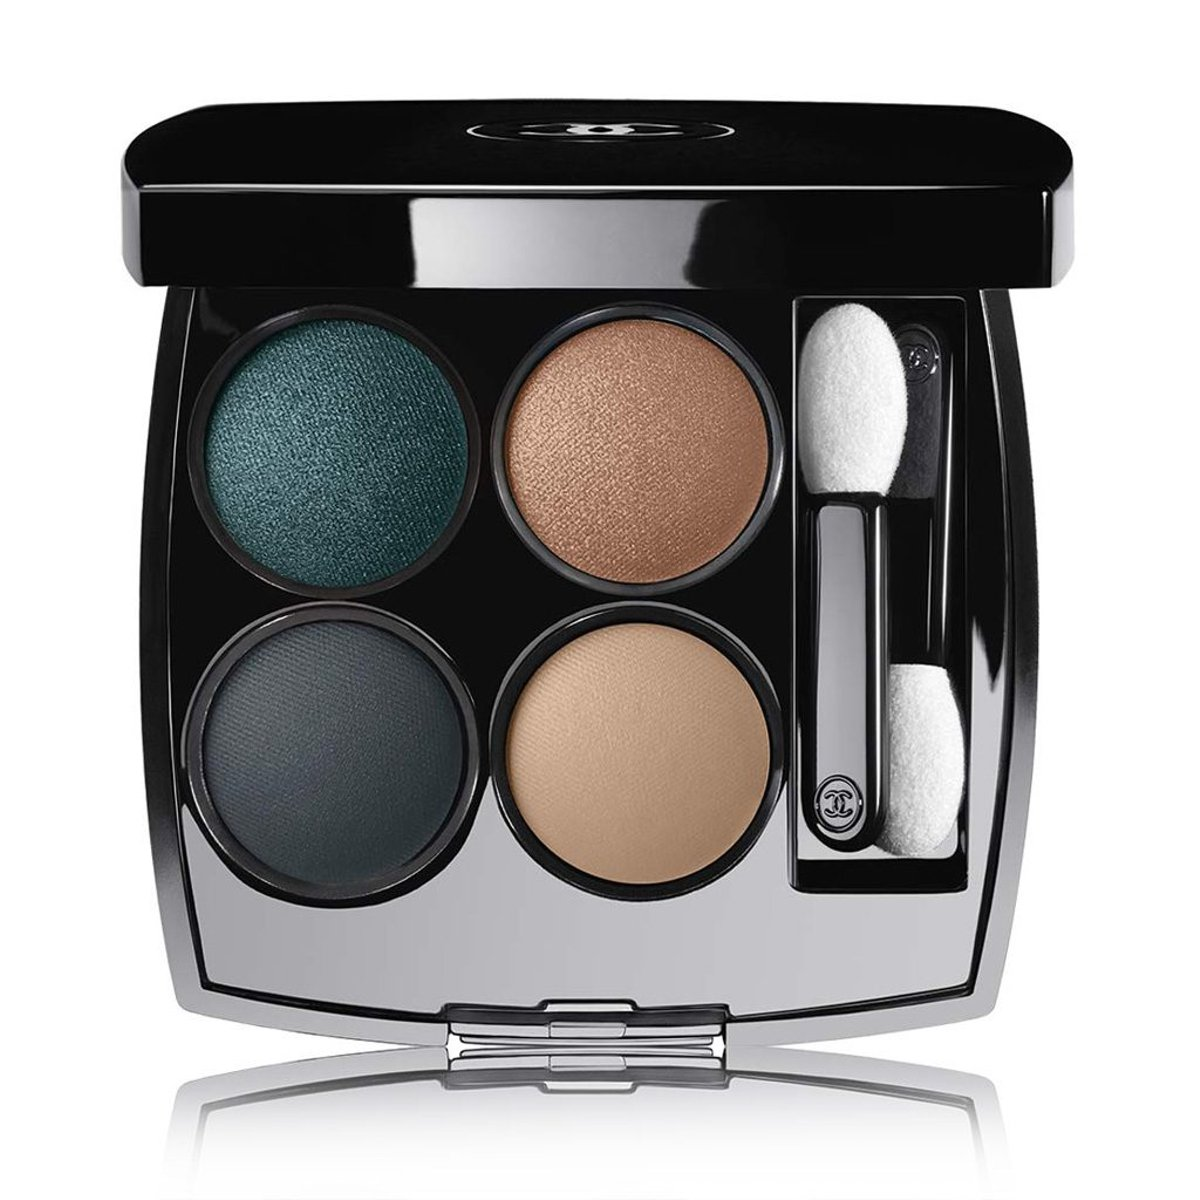 les-4-ombres-multi-effect-quadra-eyeshadow-288-road-movie-2g.3145891642889